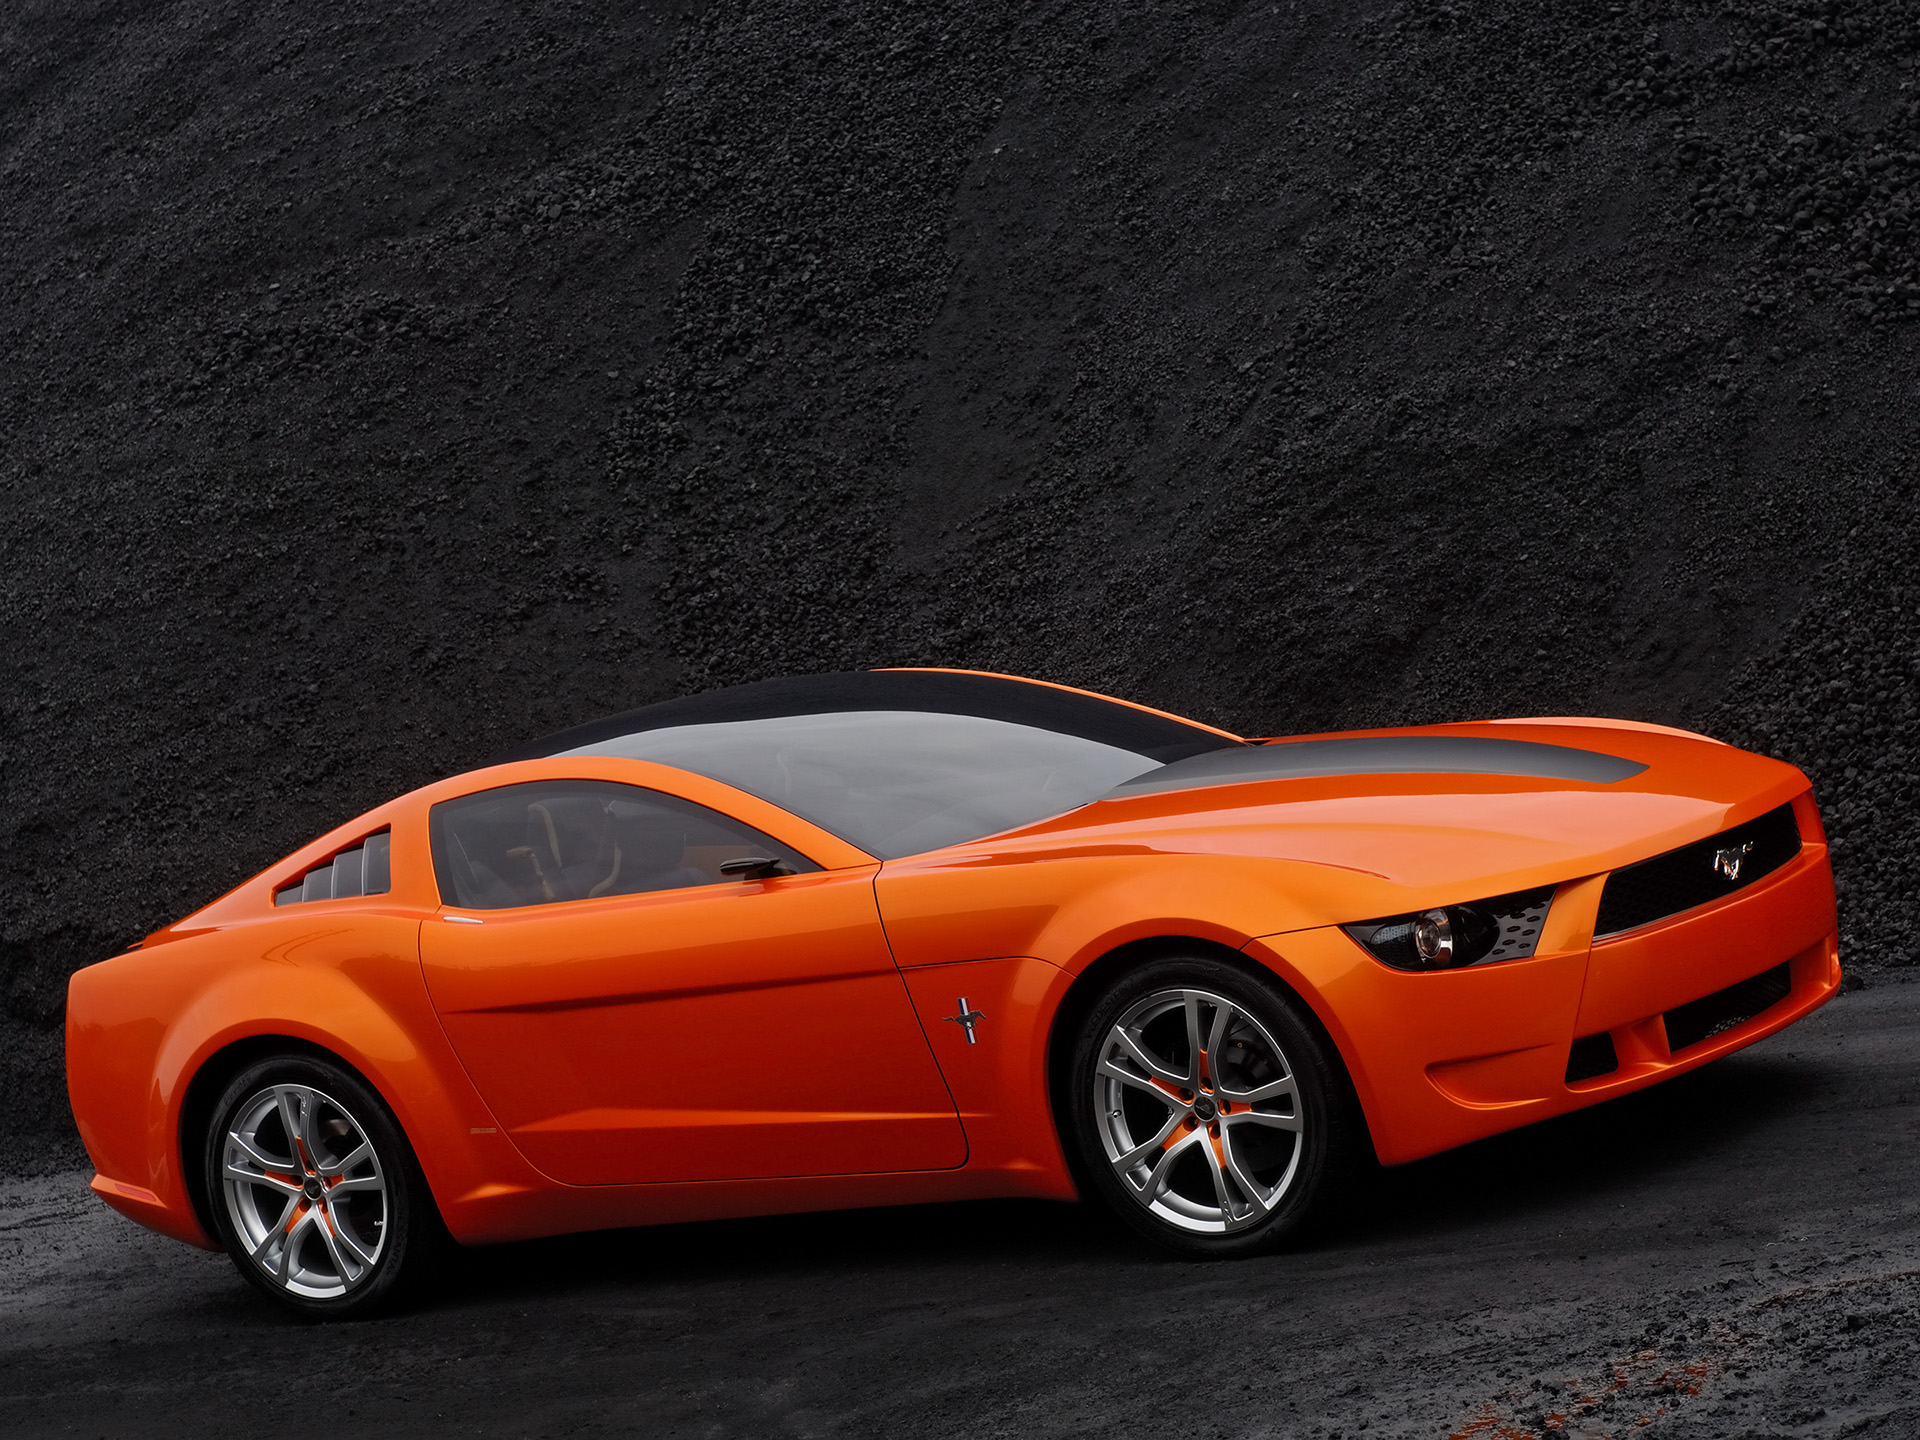 Italdesign Giugiaro Ford Mustang Concept photo 39929